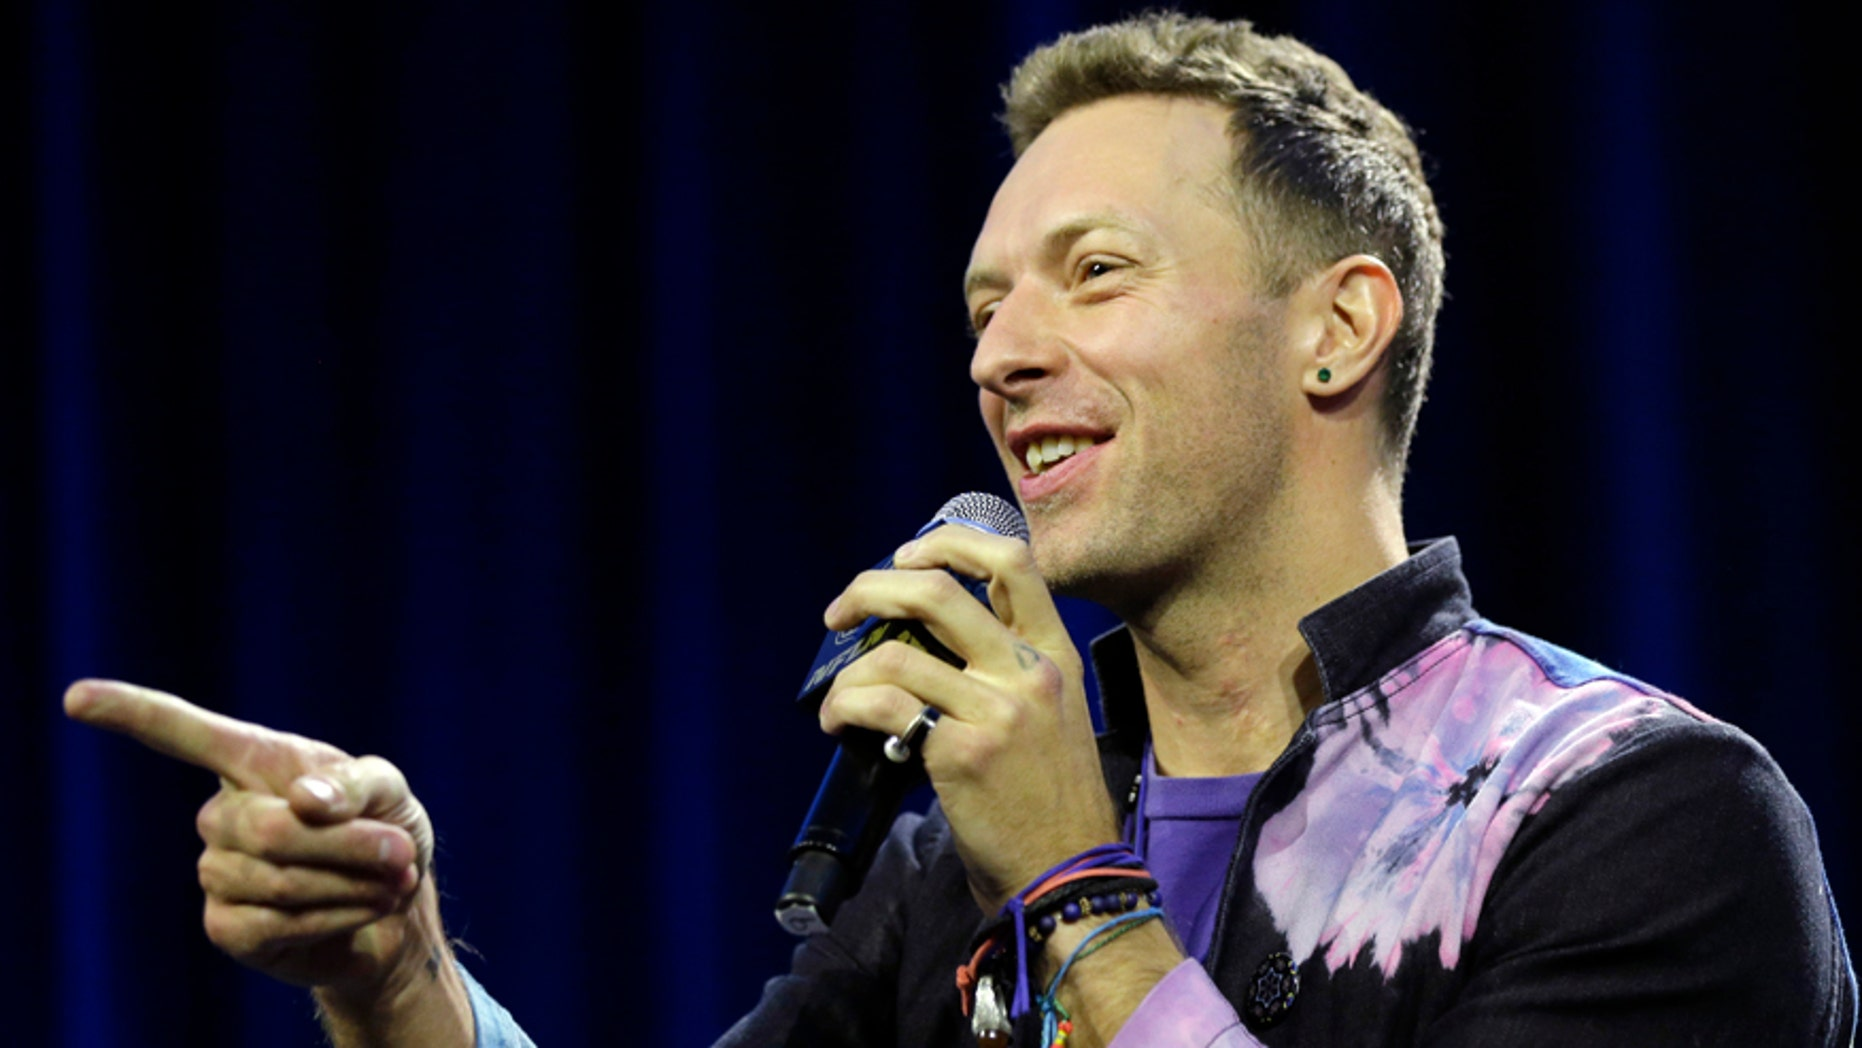 Chris Martin of Coldplay speaks during a halftime news conference for the upcoming NFL Super Bowl 50 football game Thursday, Feb. 4, 2016, in San Francisco. (AP Photo/David J. Phillip)